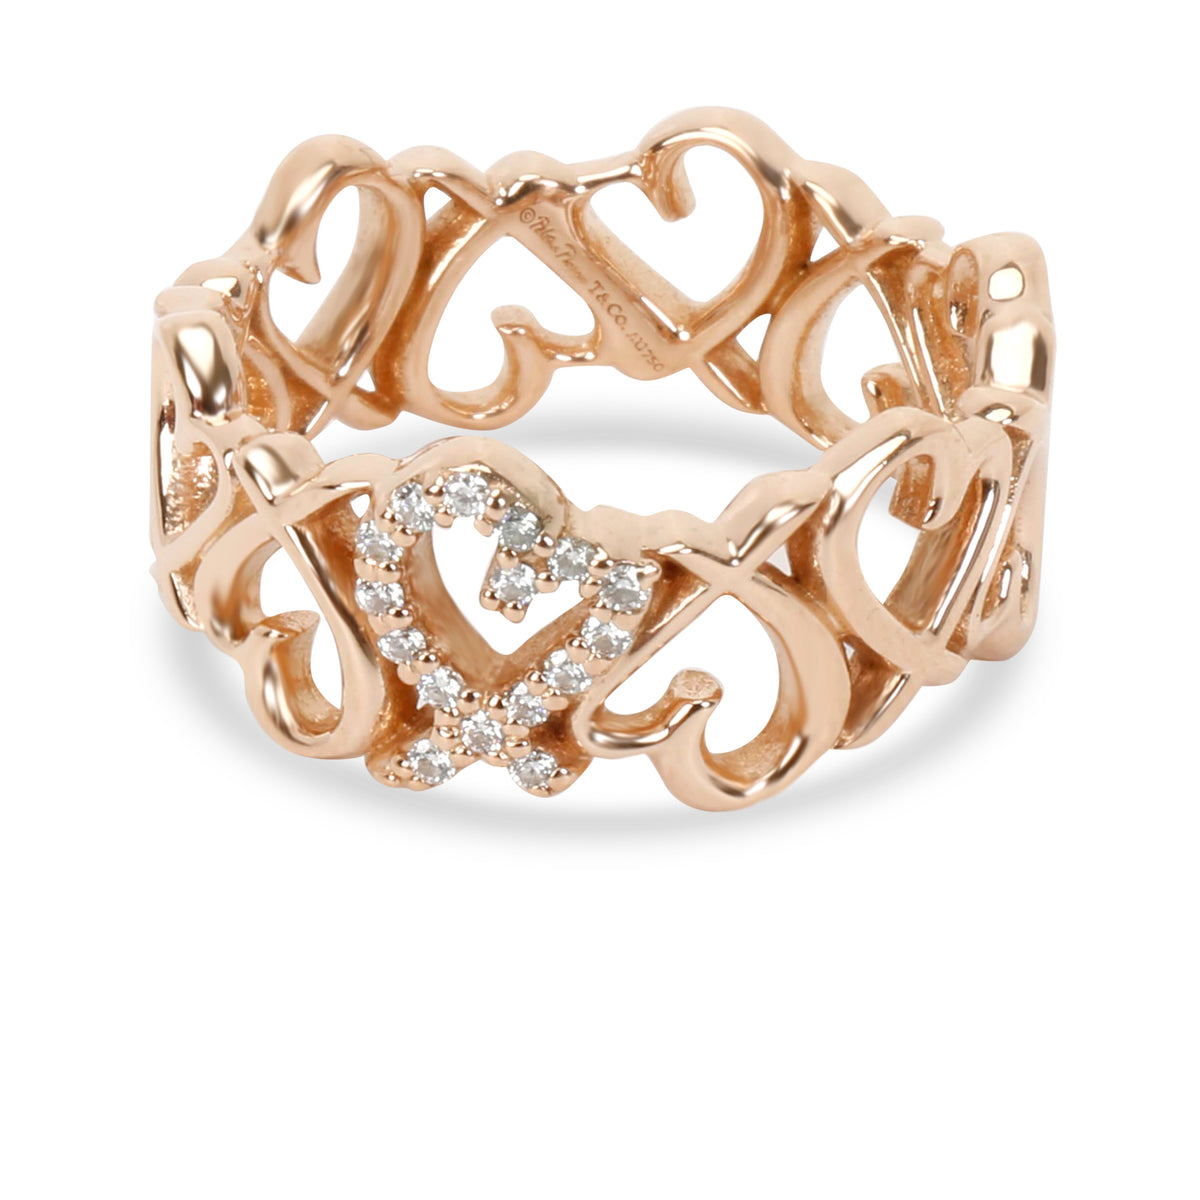 Tiffany & Co. Elsa Peretti Loving Heart Diamond Band in 18K Rose Gold 0.06 CTW